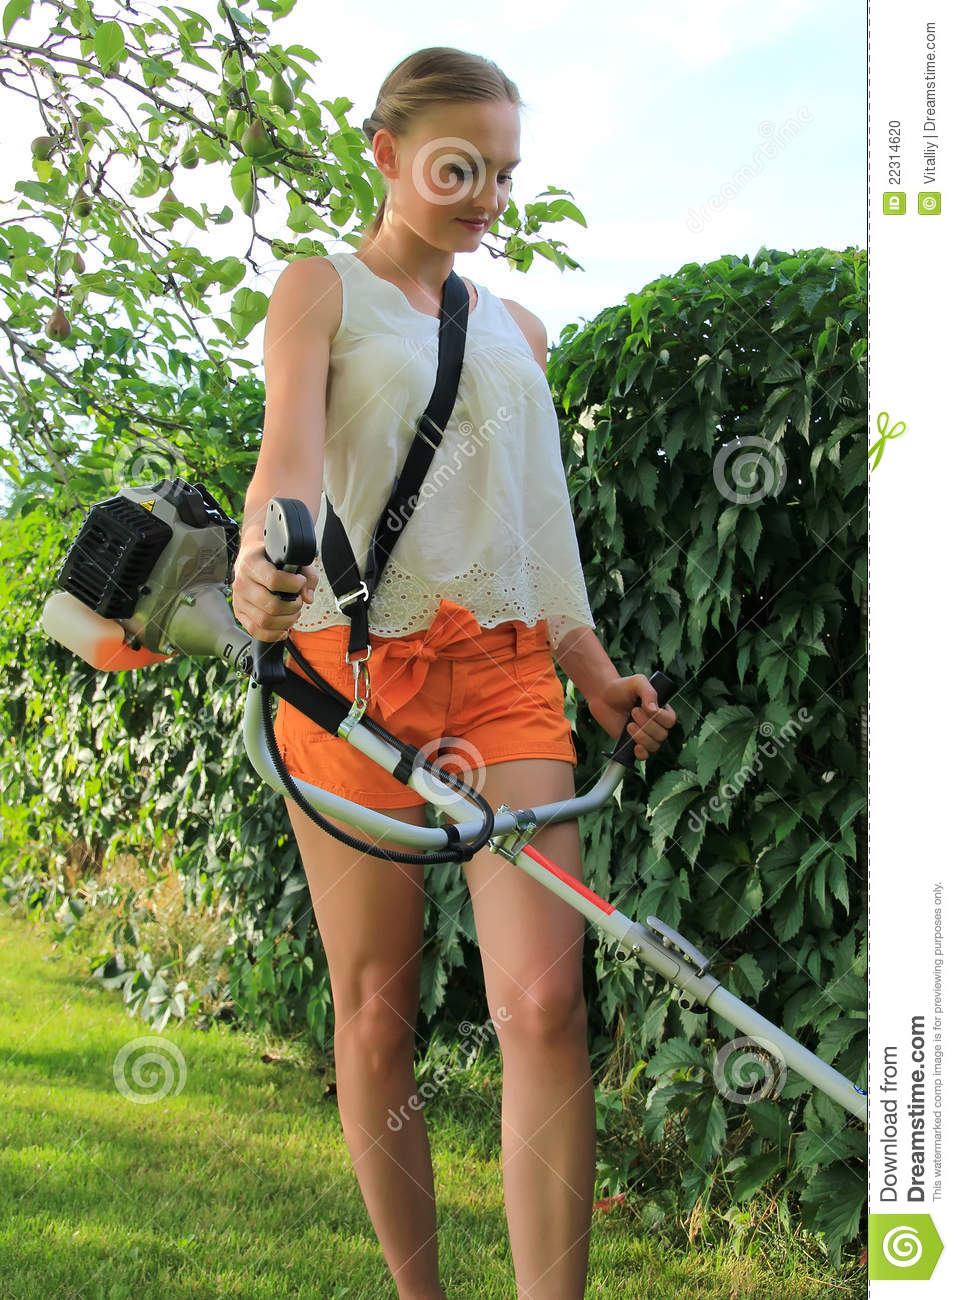 Mowing The Grass Stock Photo Image Of Shorts Grass